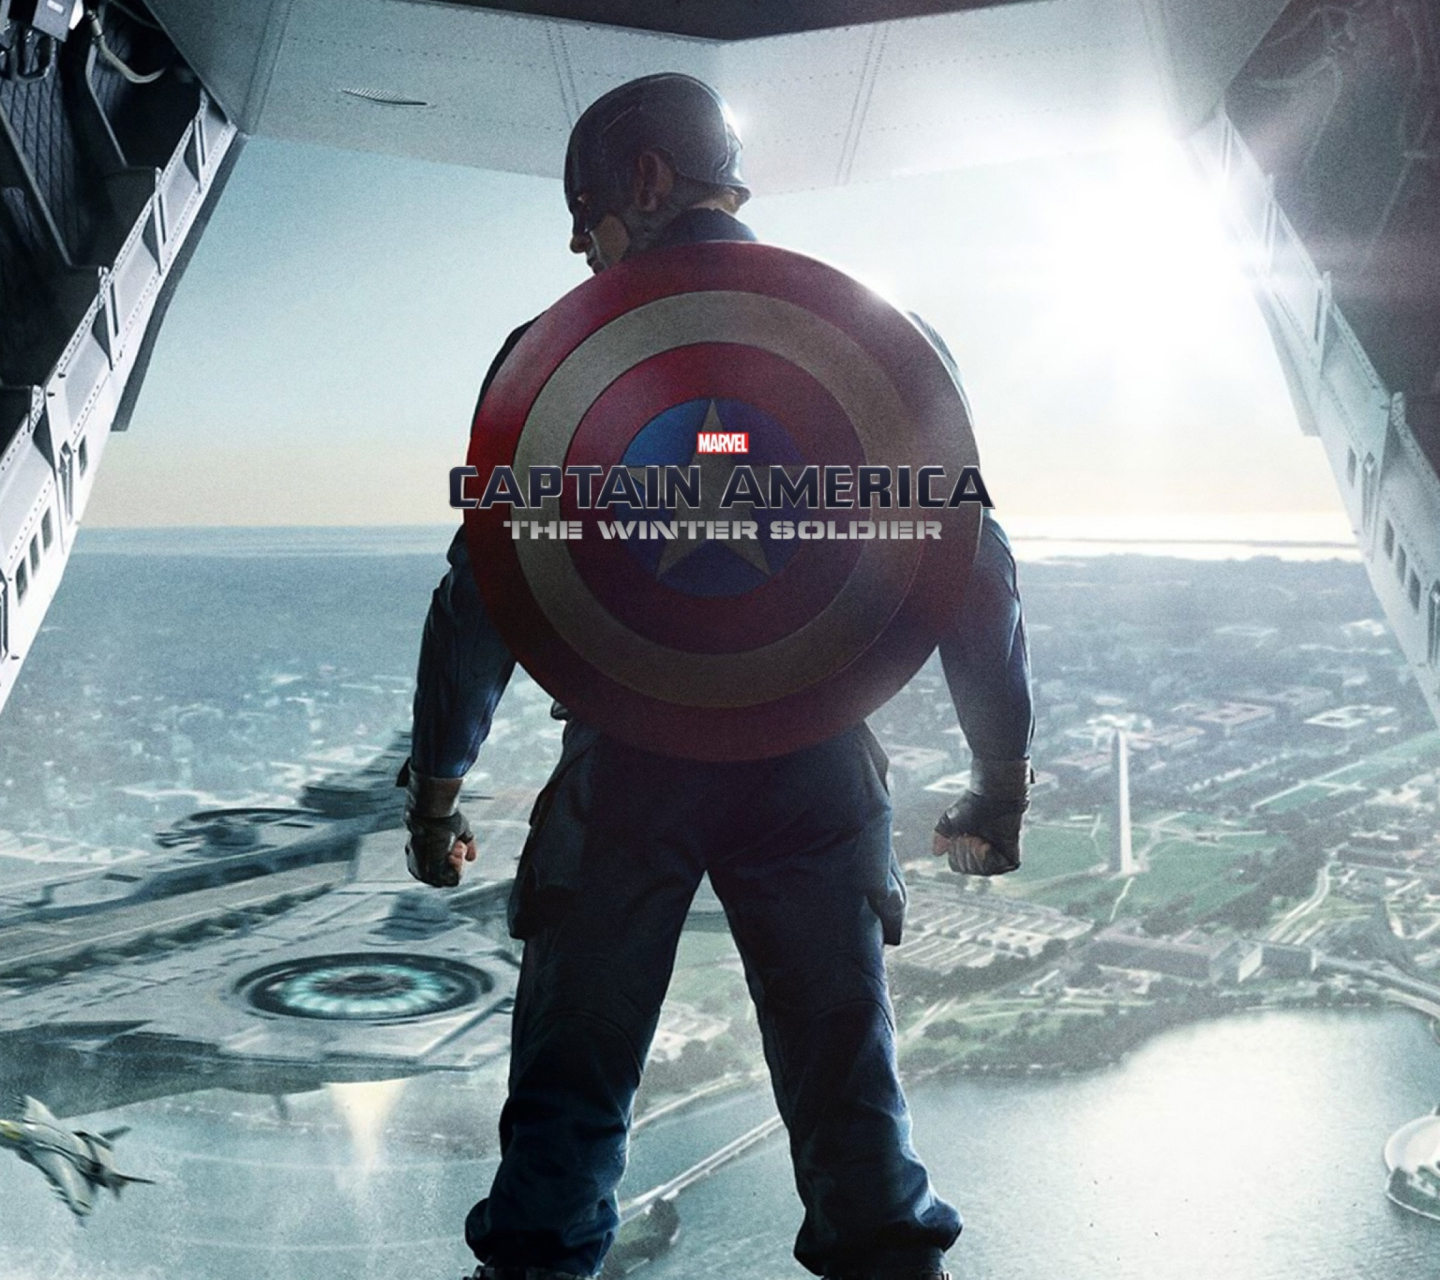 Captain America The Winter Soldier Wallpaper For Samsung Galaxy S3